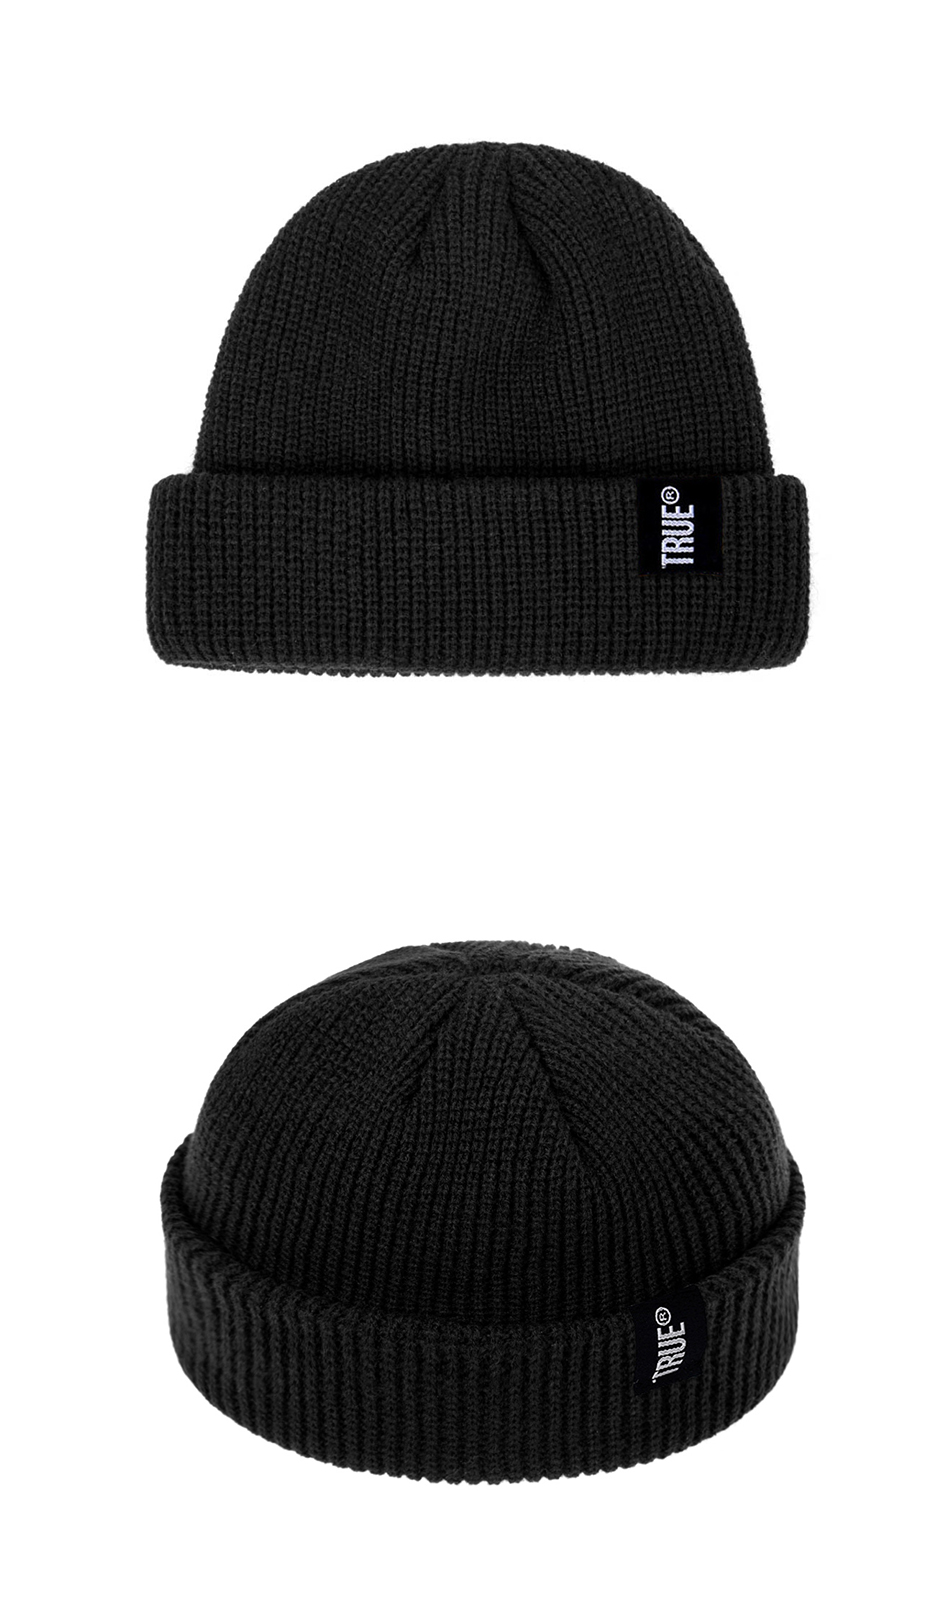 2021 Fashion Unisex Winter Hat Men Cuffed Cib Knit Hat Short Melon Ski Beanies Autumn Winter Solid Color Casual Beanie Hat 25